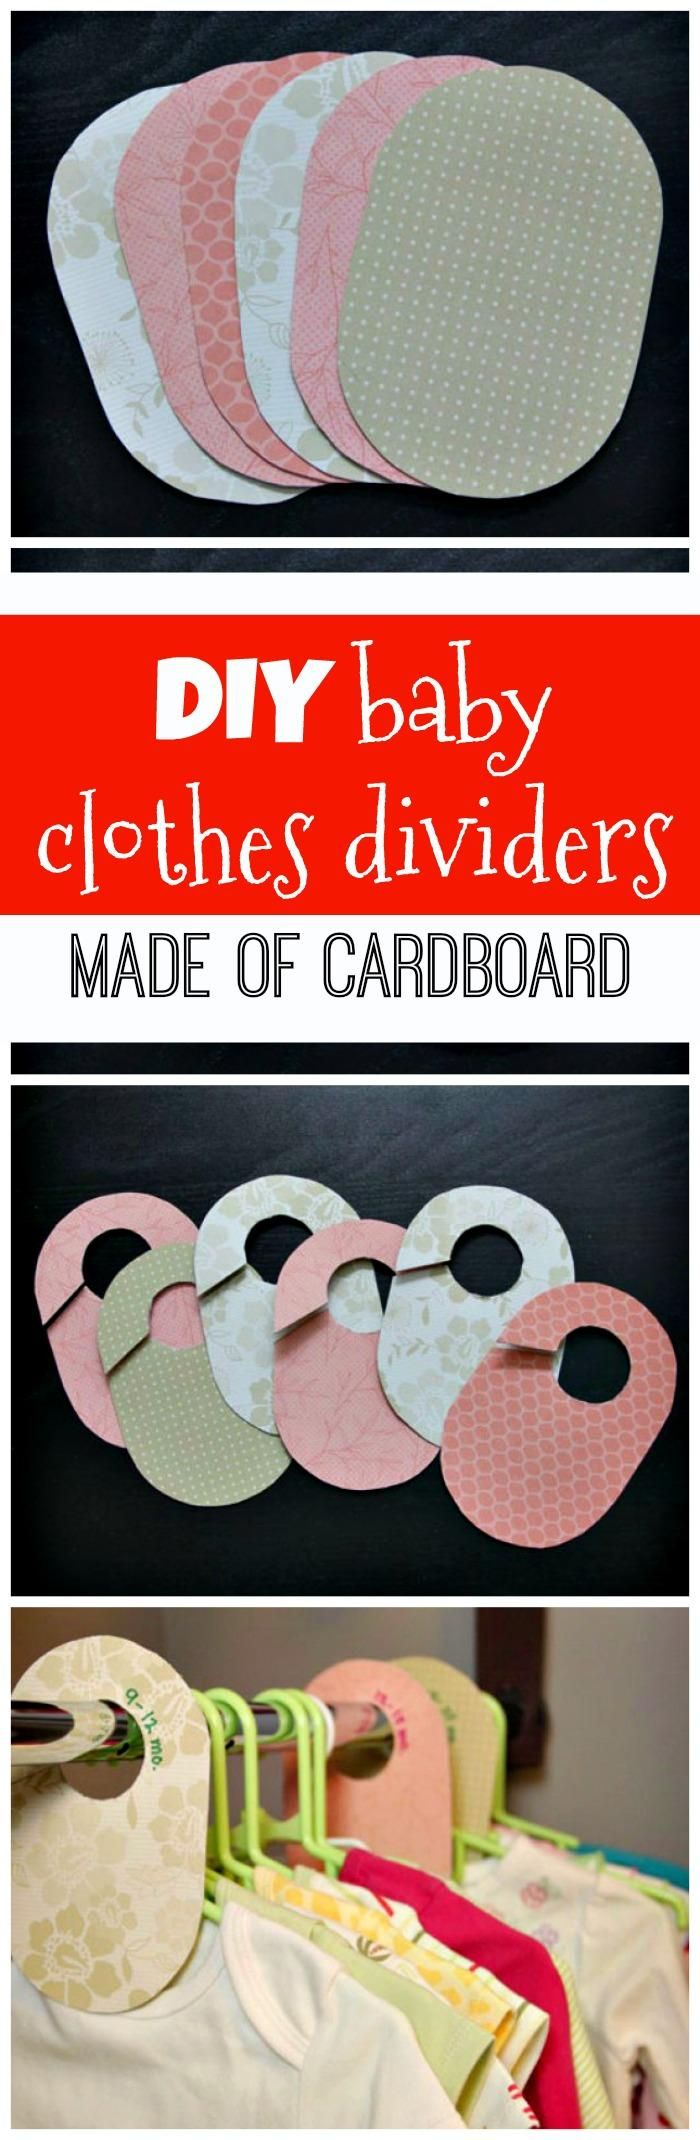 DIY Cardboard Baby Closet Dividers - 20 Easy DIY Baby Closet Dividers To Organize Baby Clothes